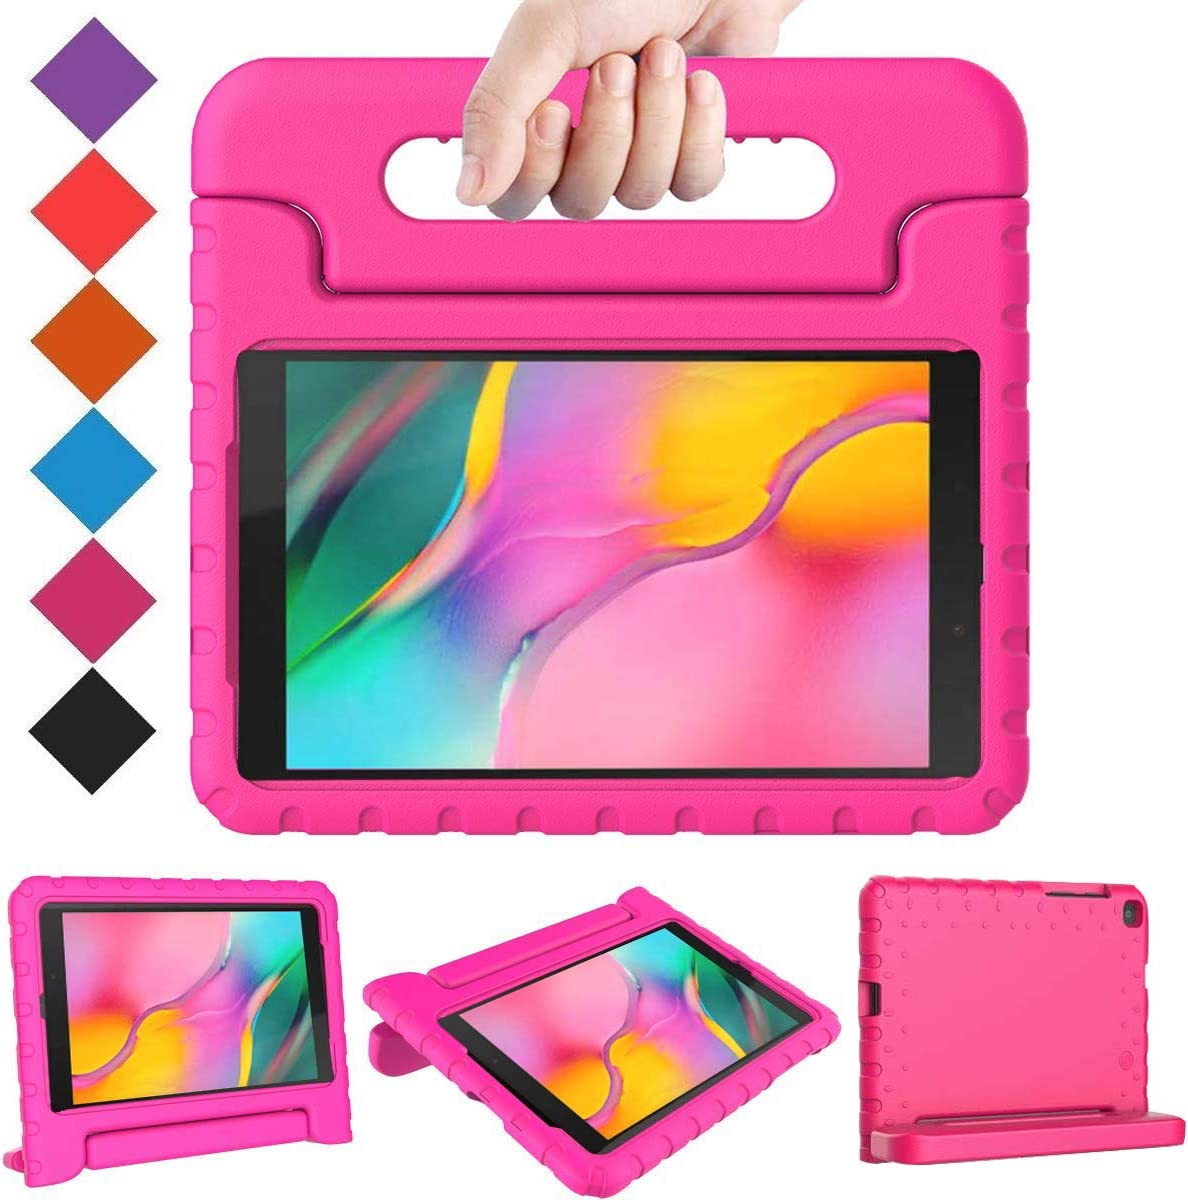 BMOUO Kids Case for Samsung Galaxy Tab A 8.0 2019 SM-T290/T295, Galaxy Tab A 8.0 Case 2019, Shockproof Light Weight Protective Handle Stand Case for Galaxy Tab A 8.0 Inch 2019 Without S Pen- Rose